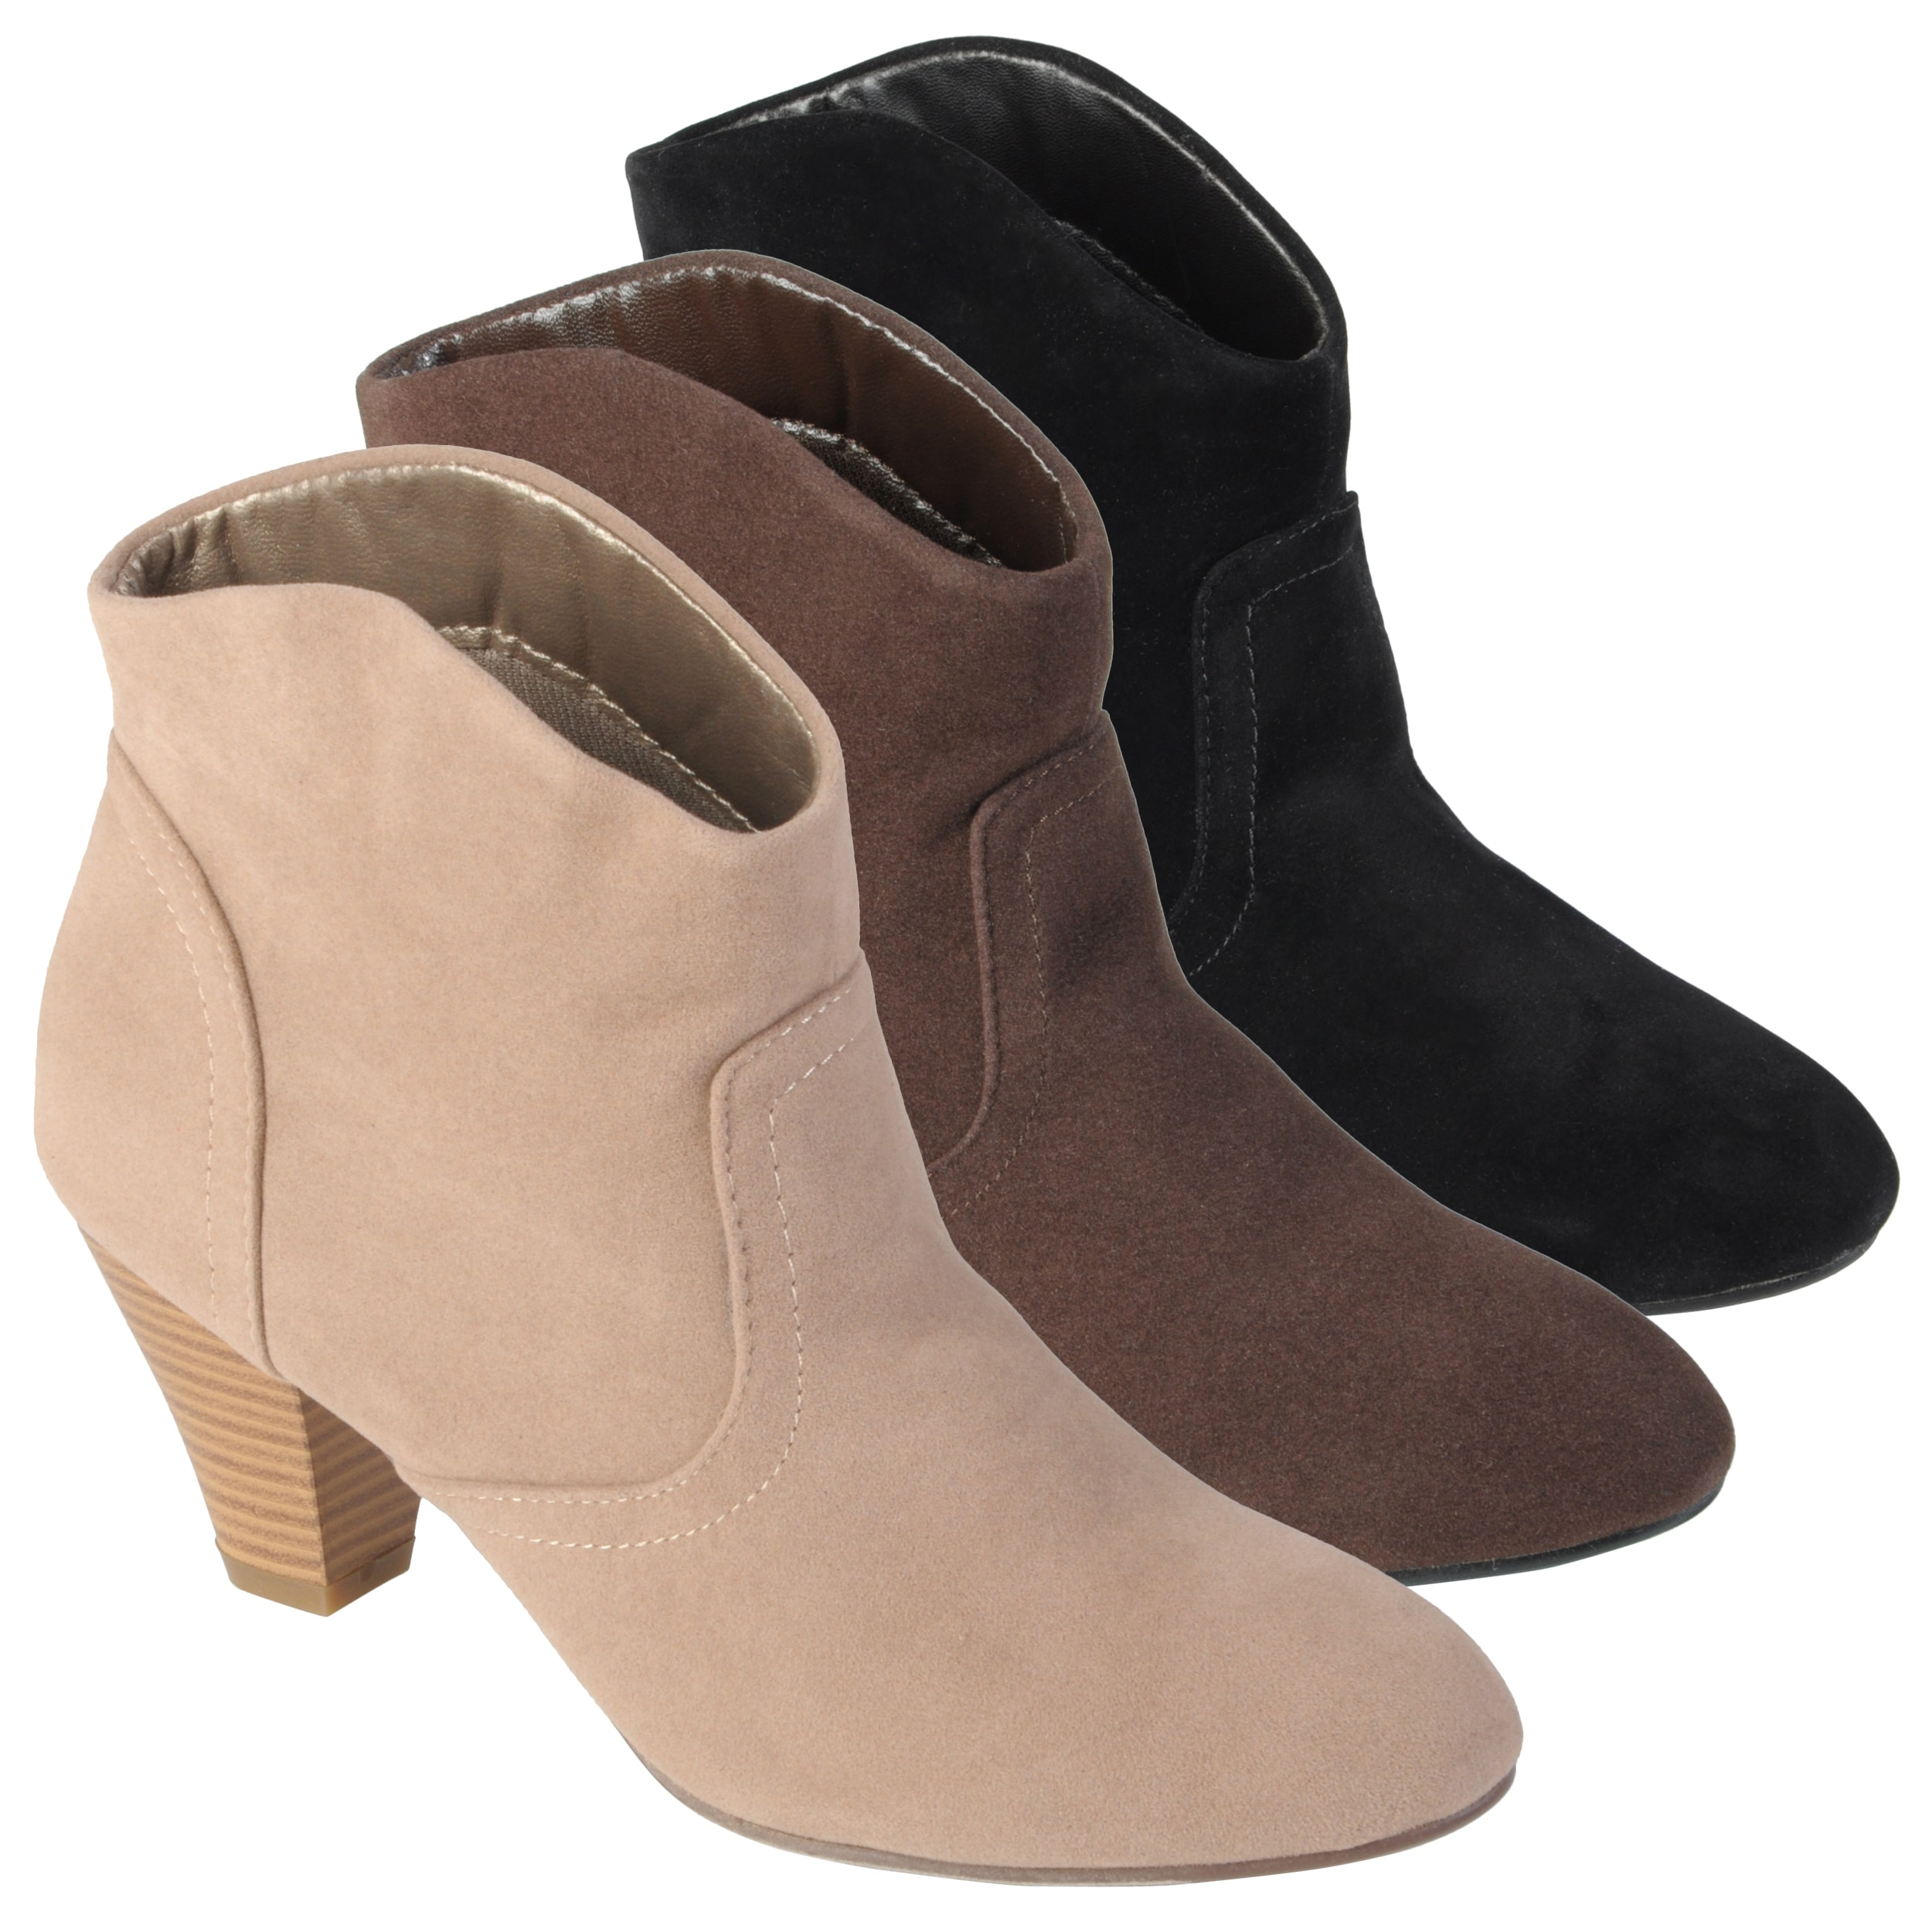 Journee Collection Women&#39;s &#39;Pippa&#39; Topstiched High Heel Booties